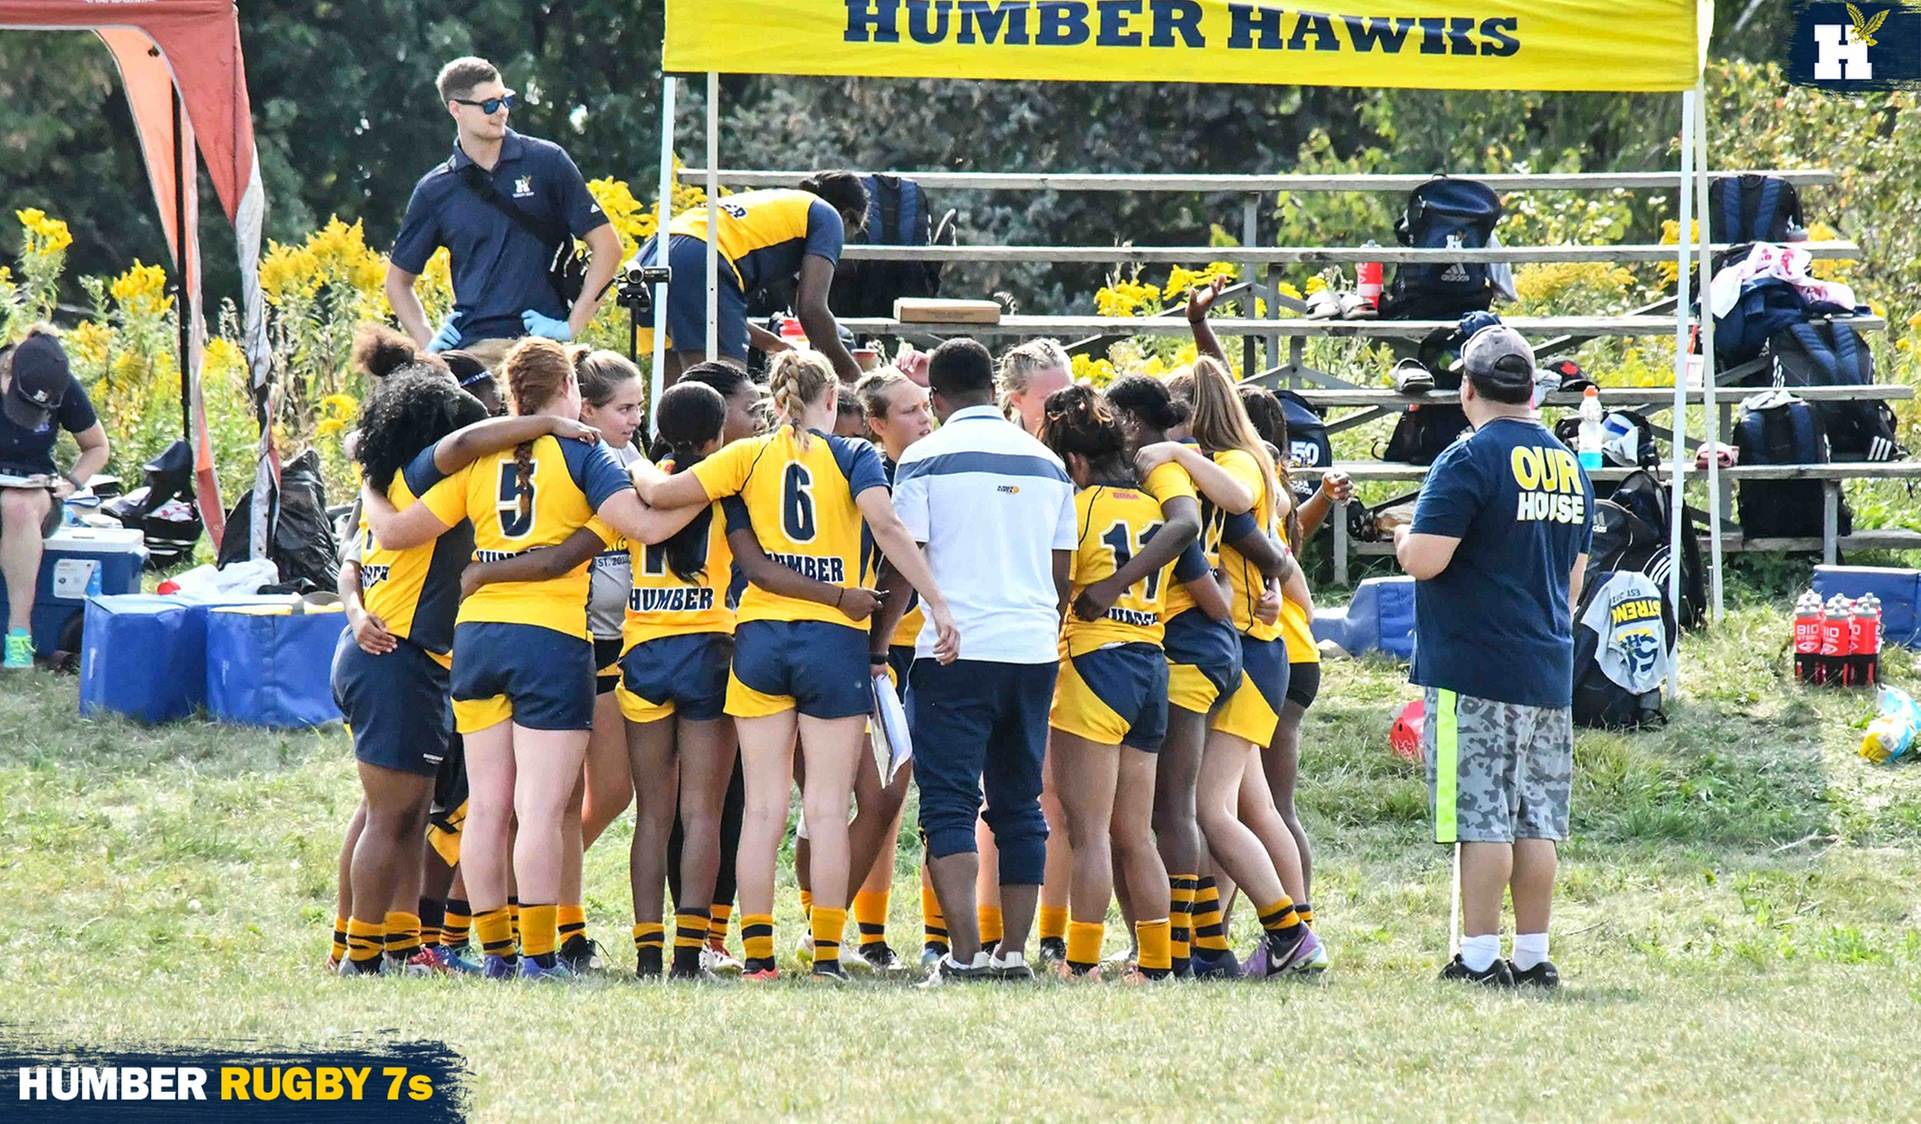 Humber Rugby 7s Trim Roster as Tryouts Continue